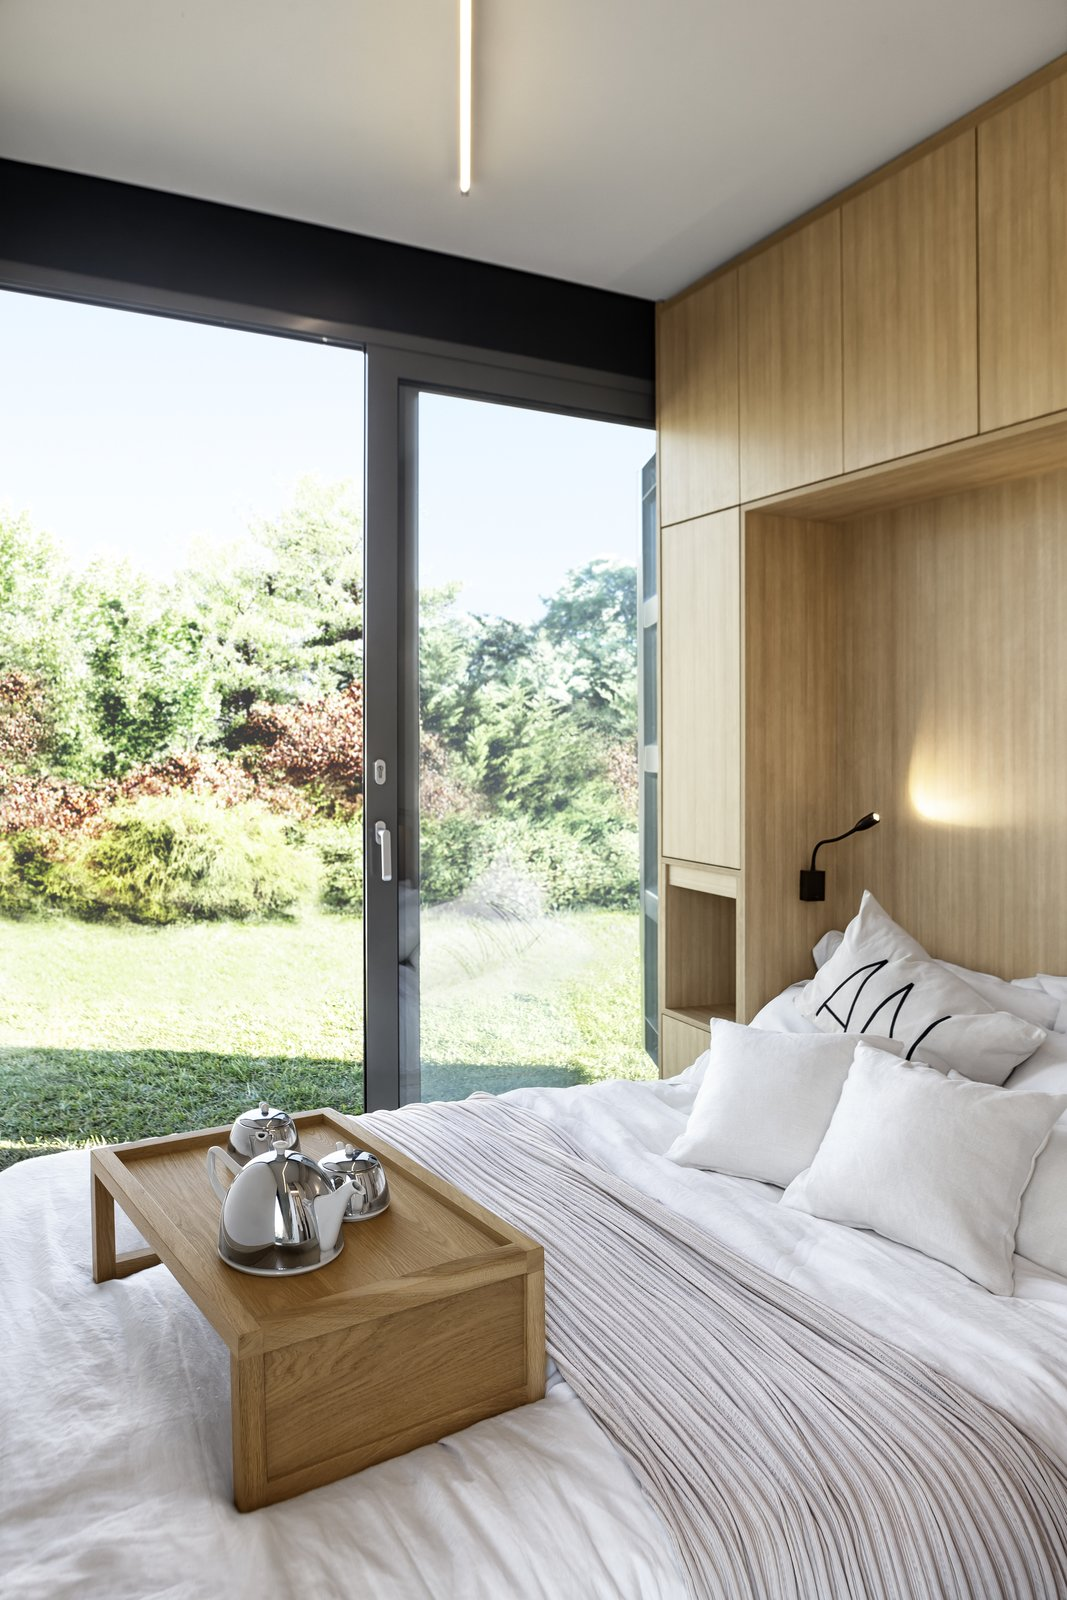 Bedroom, Ceiling Lighting, Storage, Bed, Light Hardwood Floor, and Wall Lighting Large windows draw daylight into the sleeping quarters, while providing beautiful views to the gardens.    Photo 6 of 10 in This Eco-Friendly Shipping Container Is the Ultimate Nomadic Dwelling